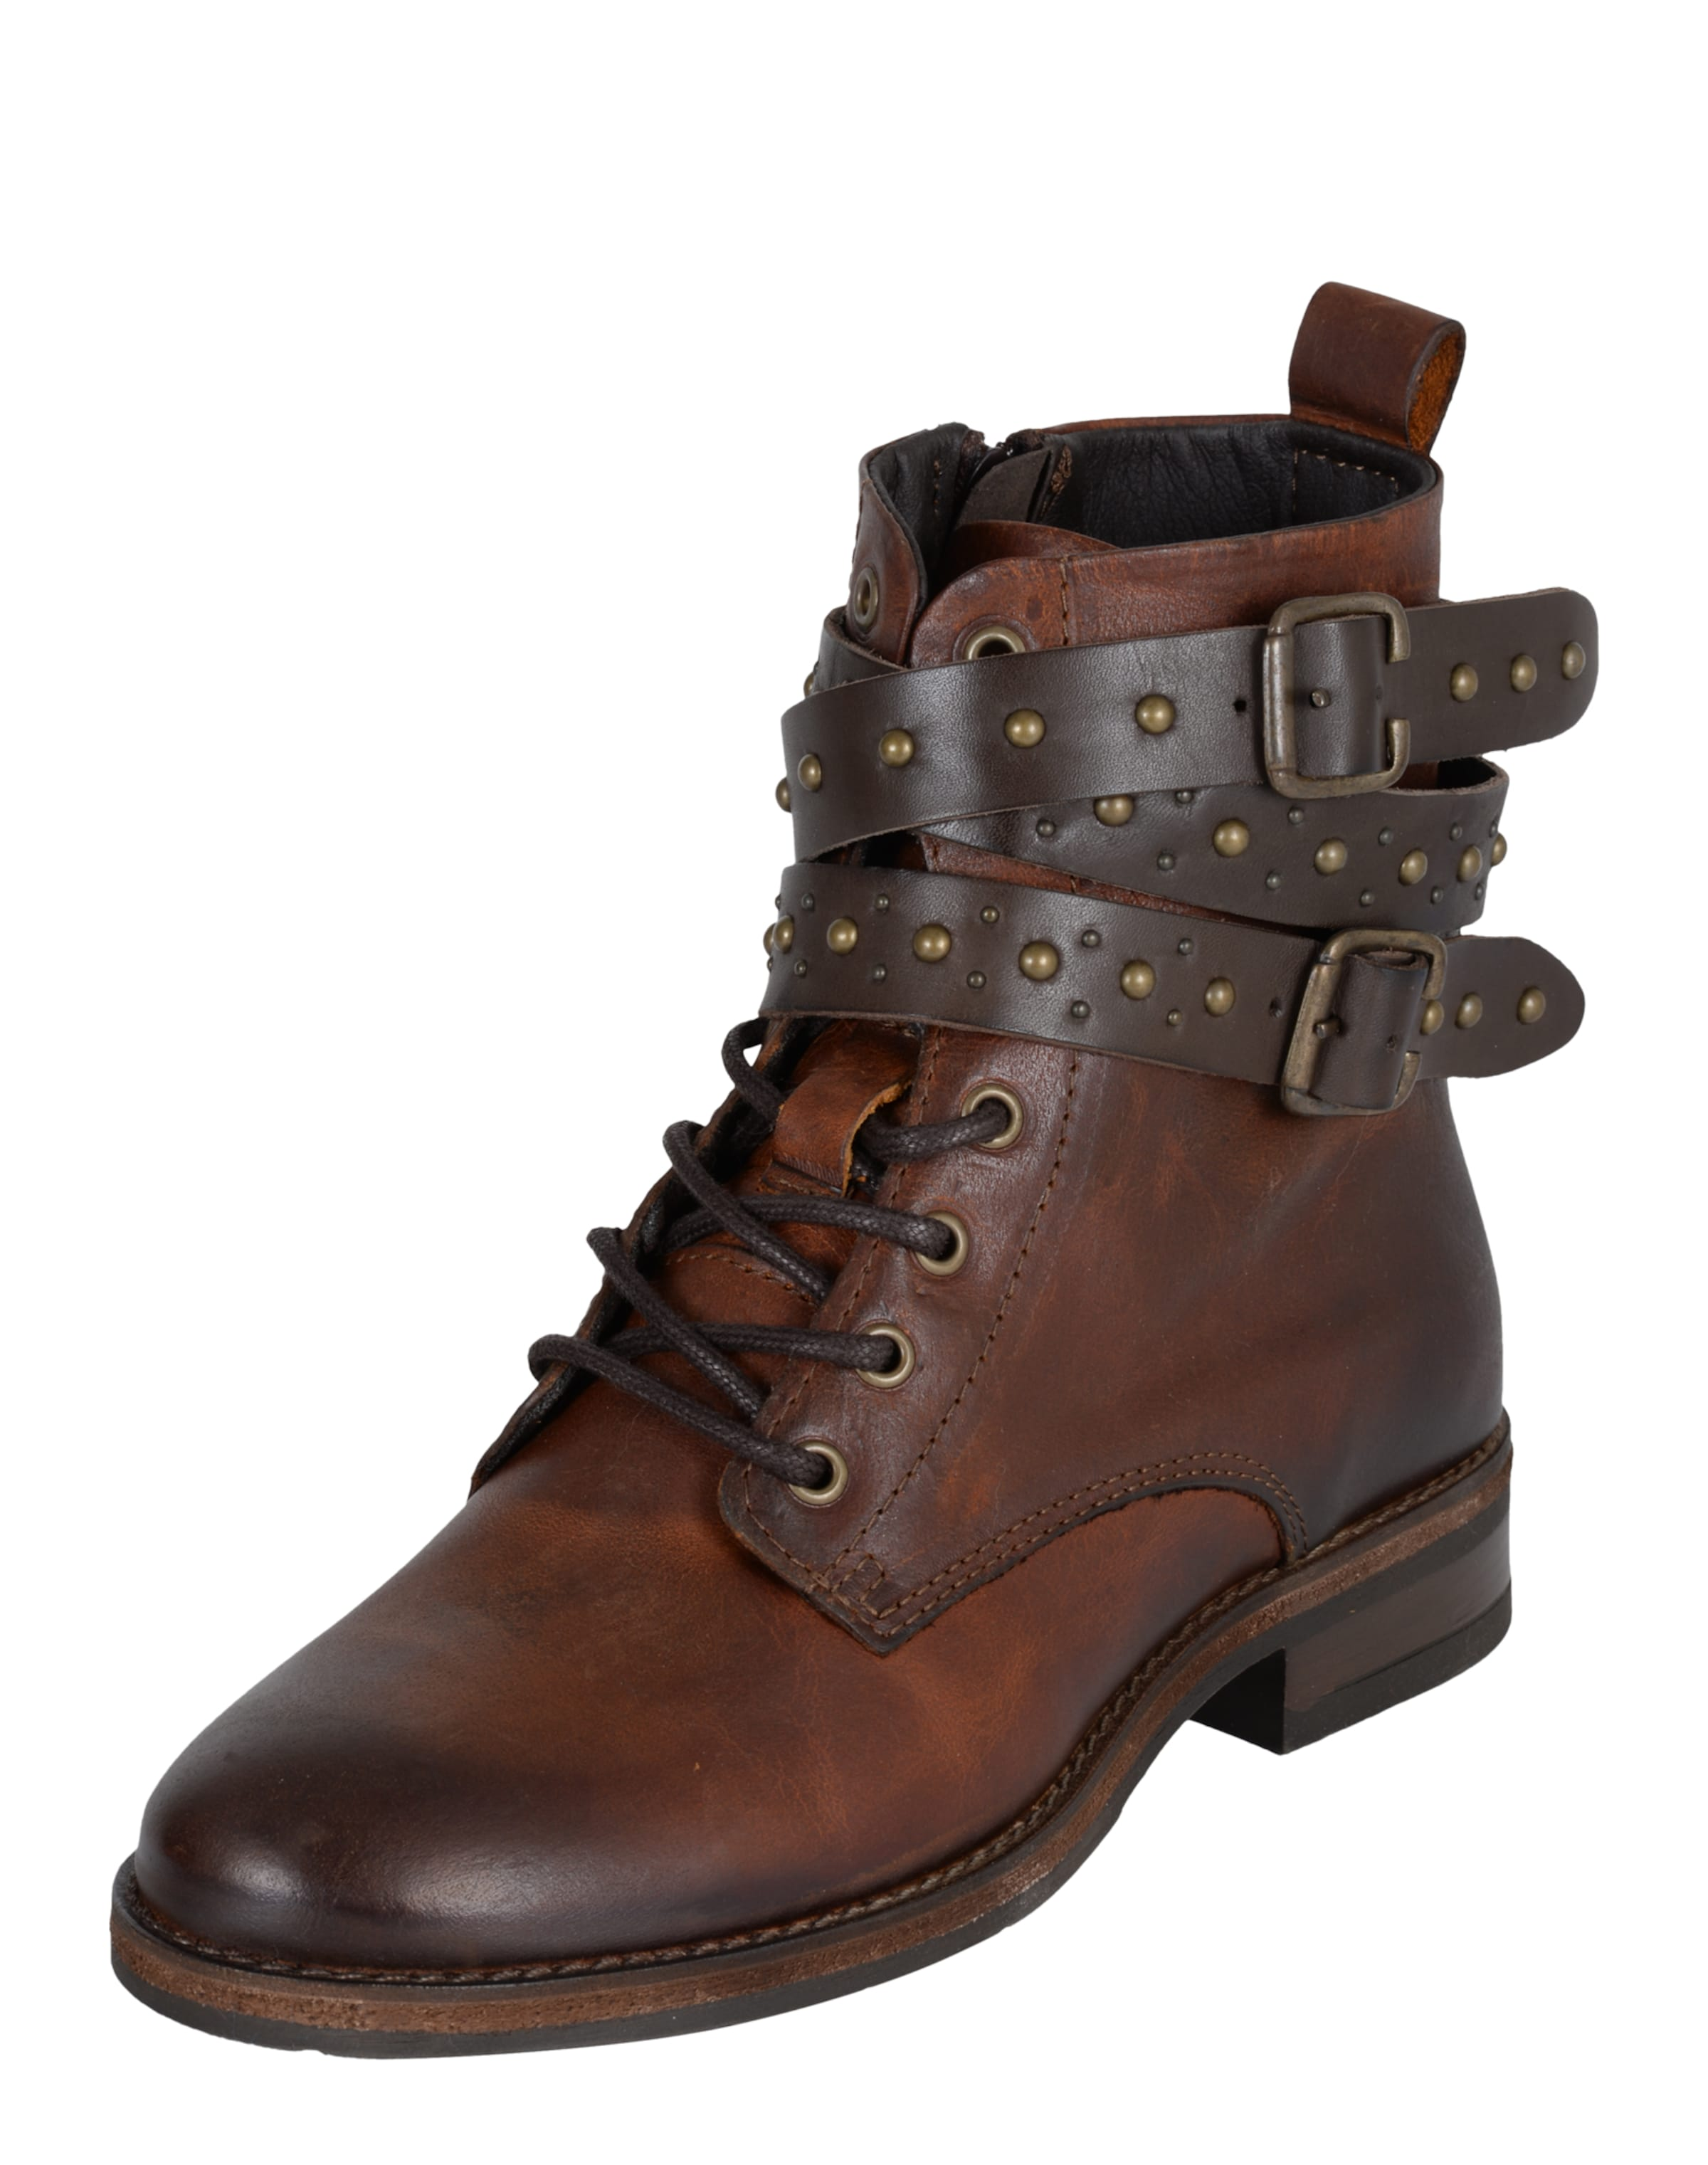 BUFFALO Boots  Bootie Laces Belts Studs